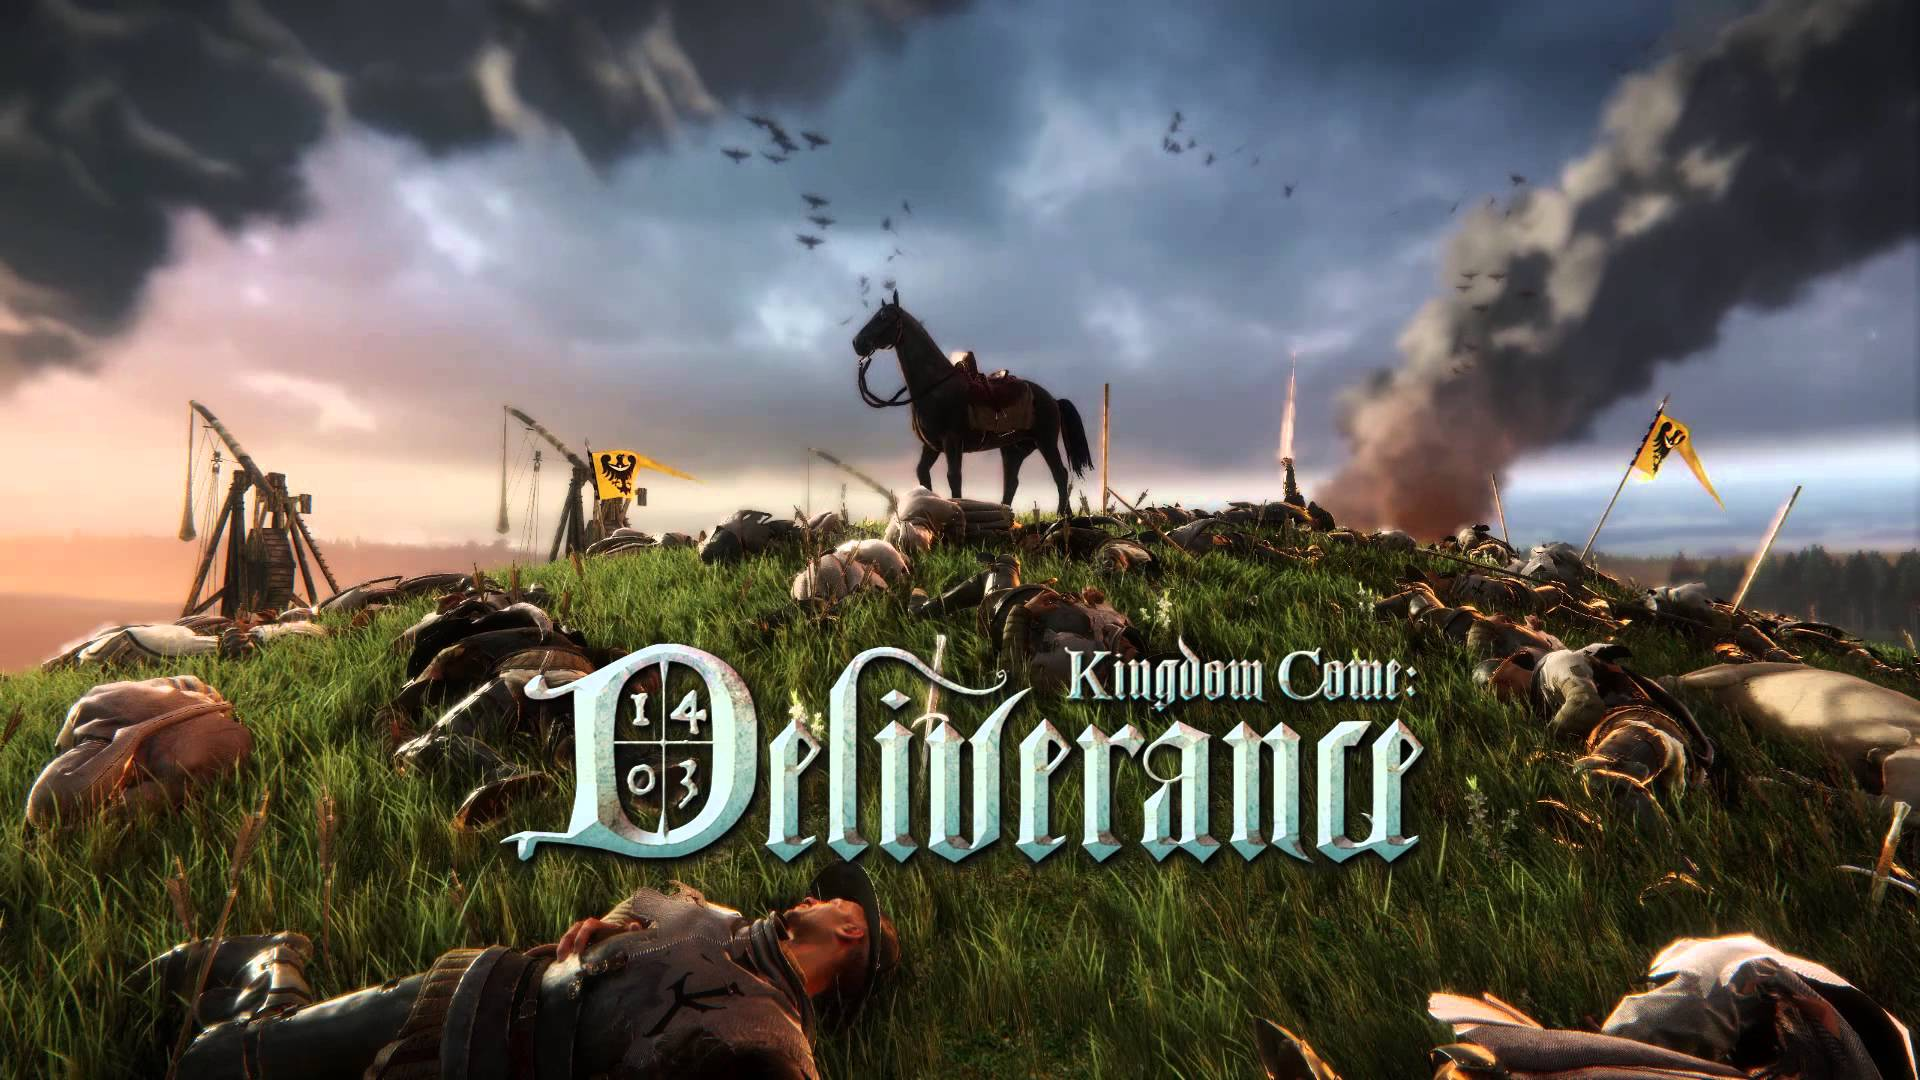 #. | Interview with the developers of the game Kingdom Come: Deliverance